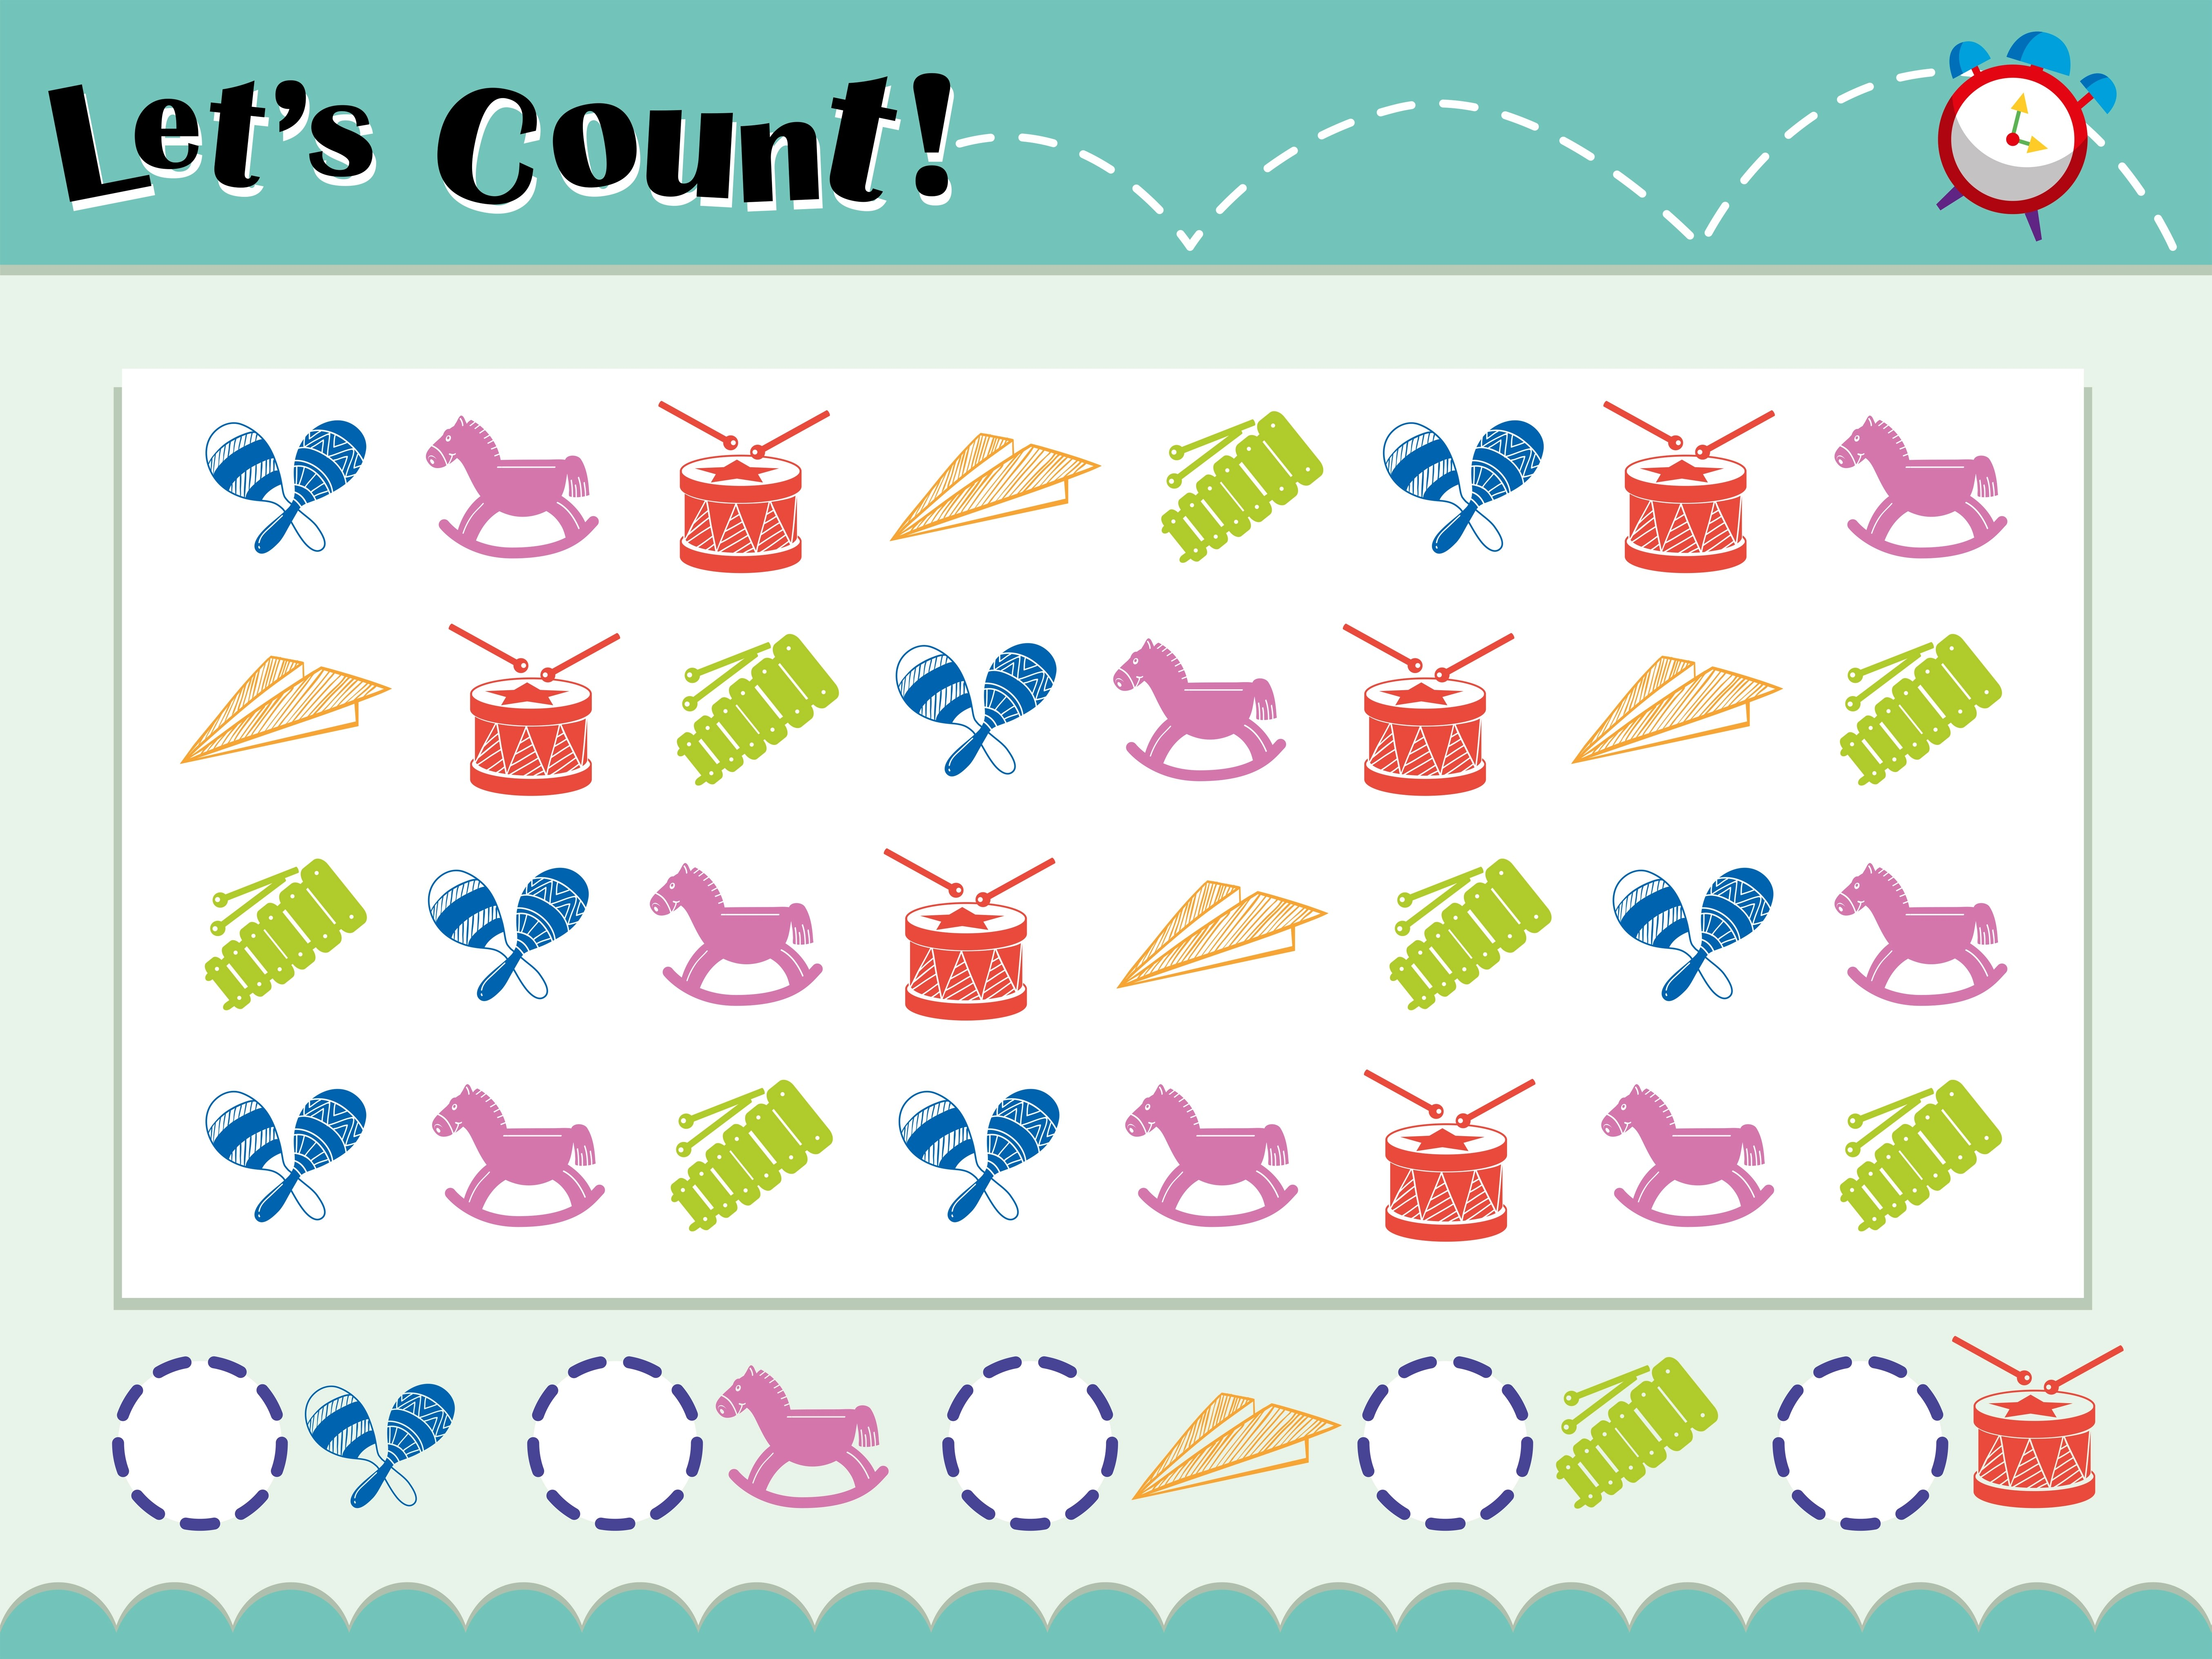 Game Template For Counting Objects